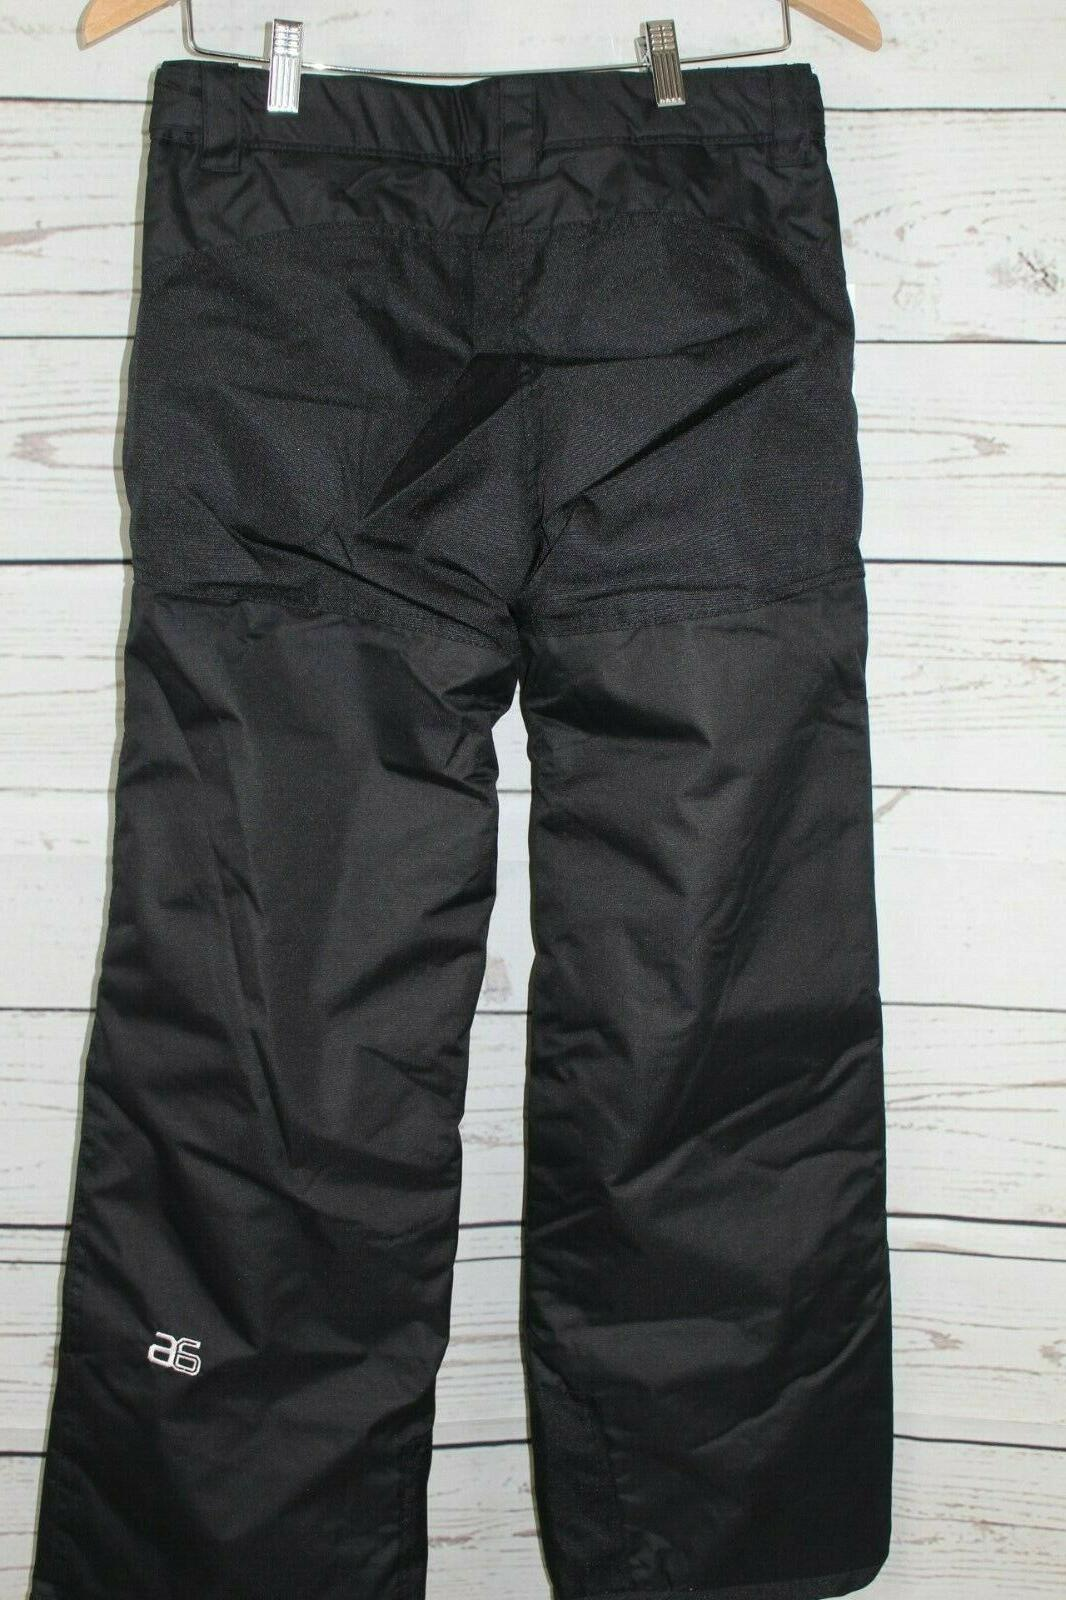 nwt insulated snow pant black choose gender